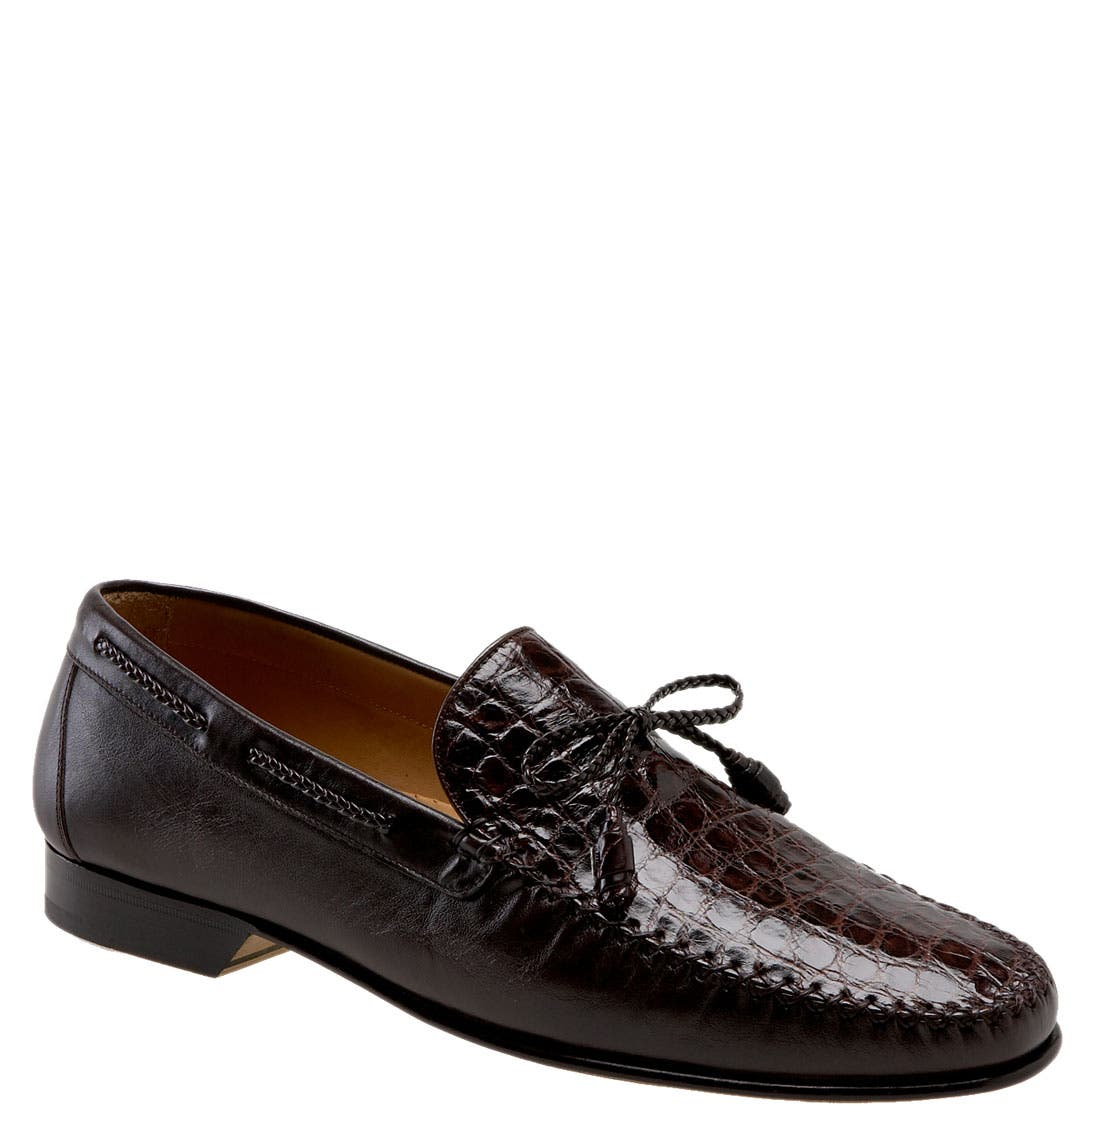 Main Image - Mezlan 'Bonds' Loafer